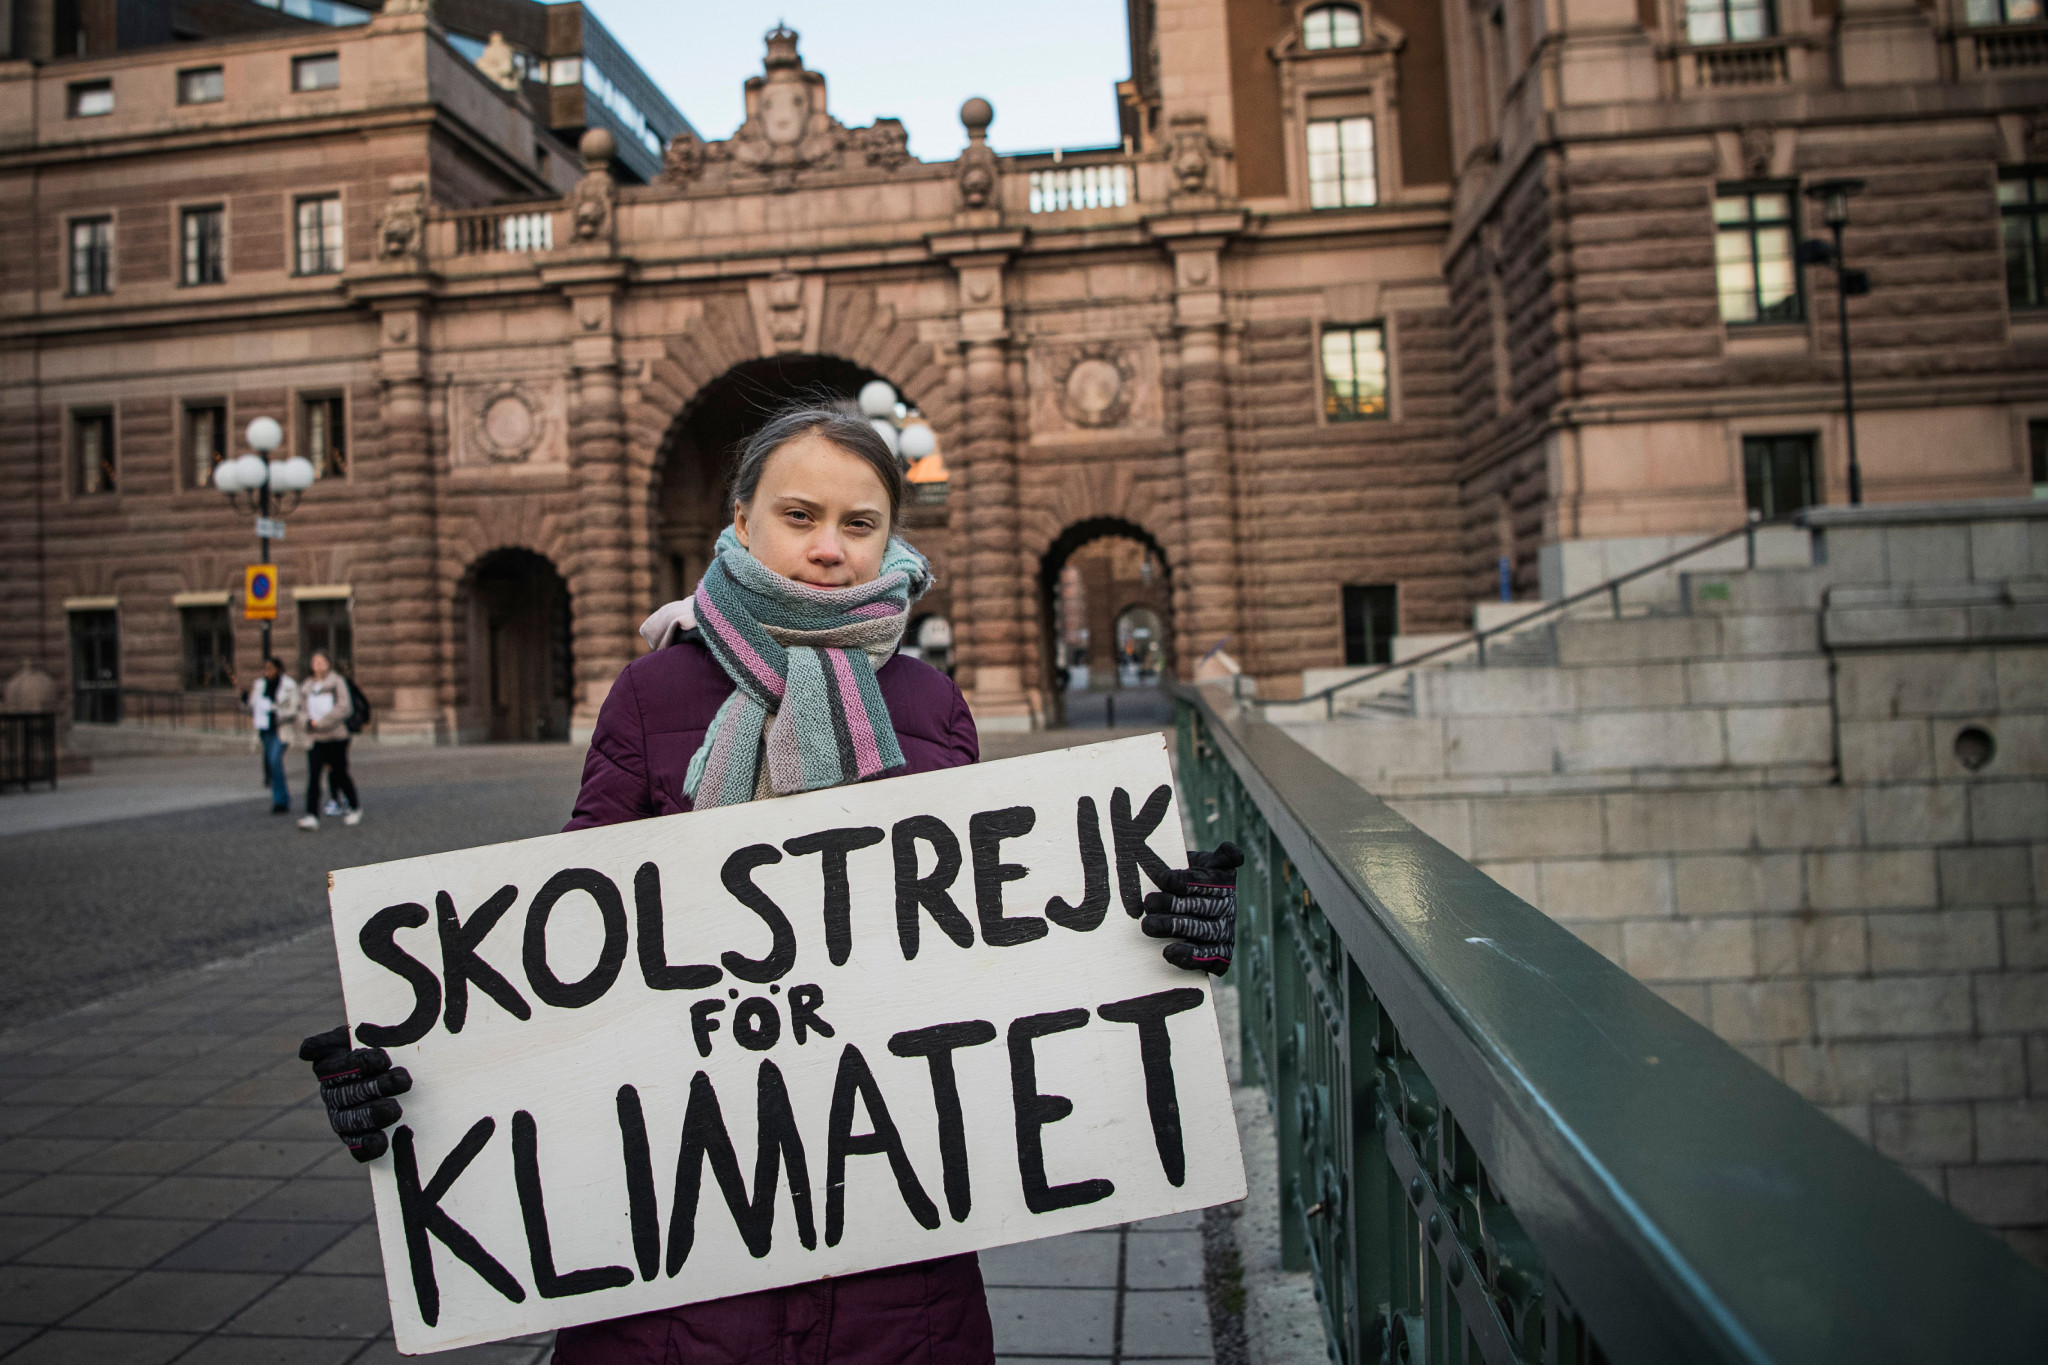 Climate change activist Thunberg to participate in demonstration during Lausanne 2020